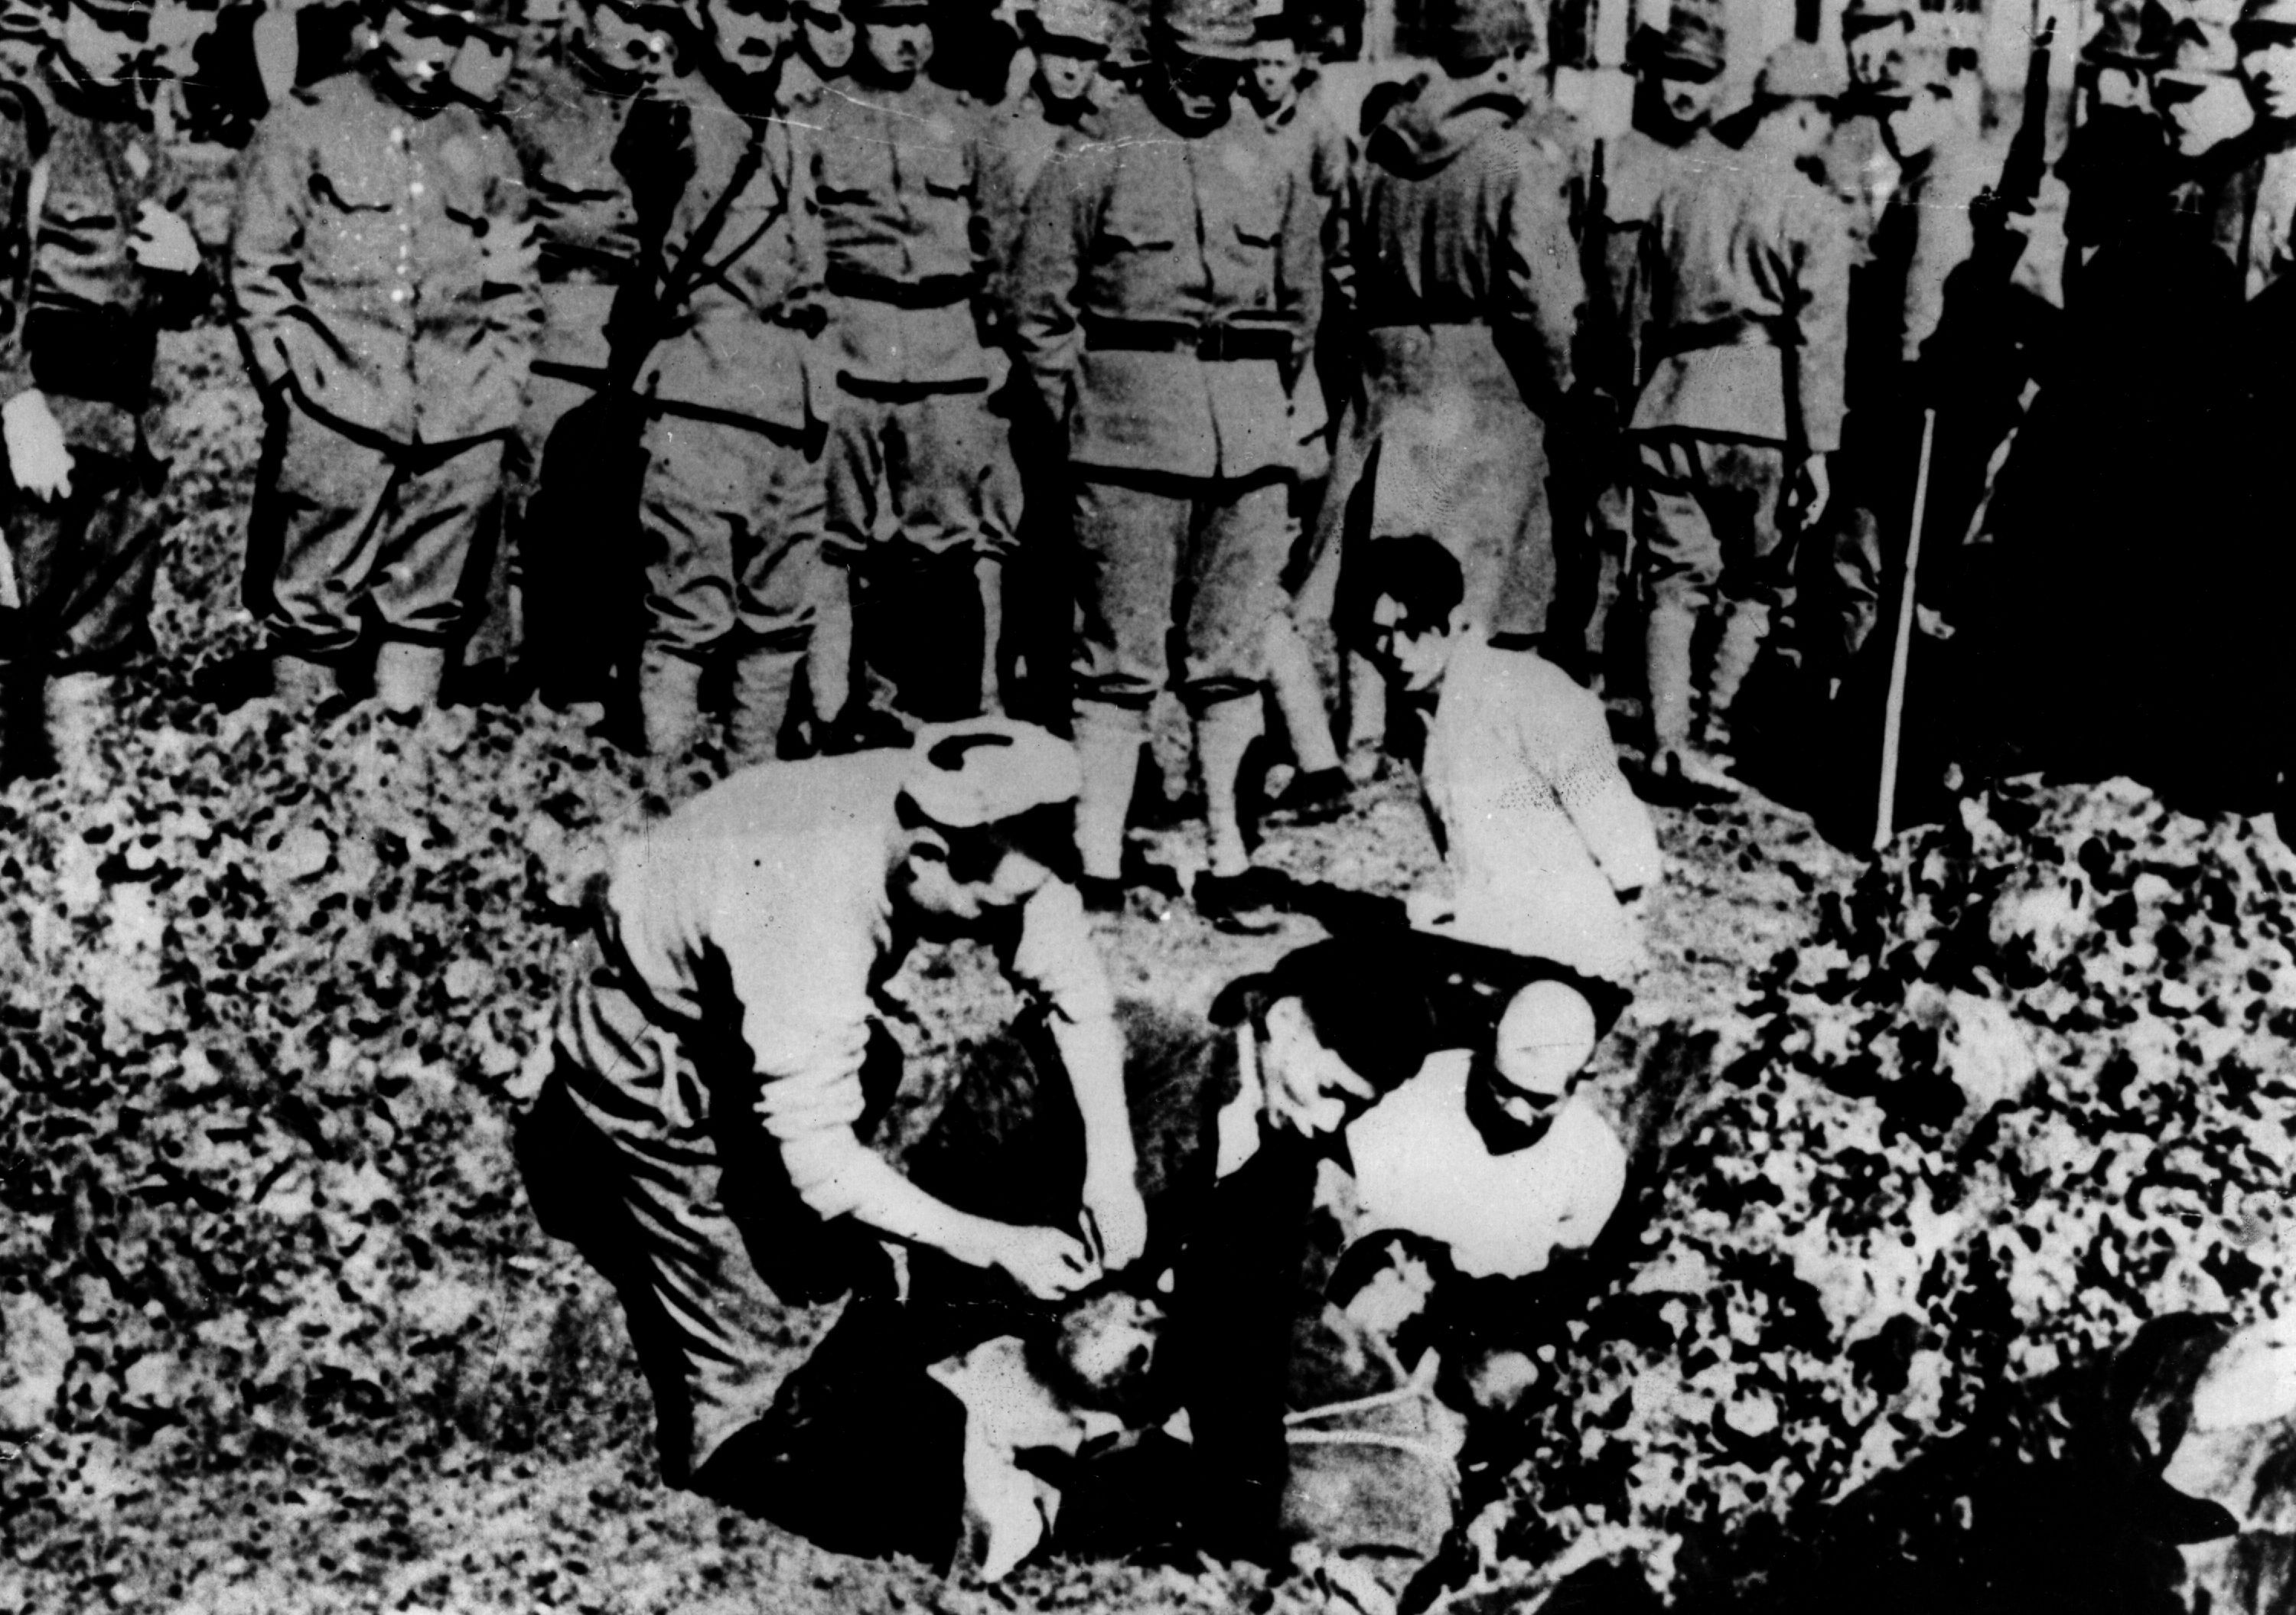 the rape of nanking The rape of nanking is surrounded in controversy that is stronger today than ever before much of this controversy involves iris chang's book, the rape of nanking many people believe that chang exaggerates the atrocities committed in nanking.